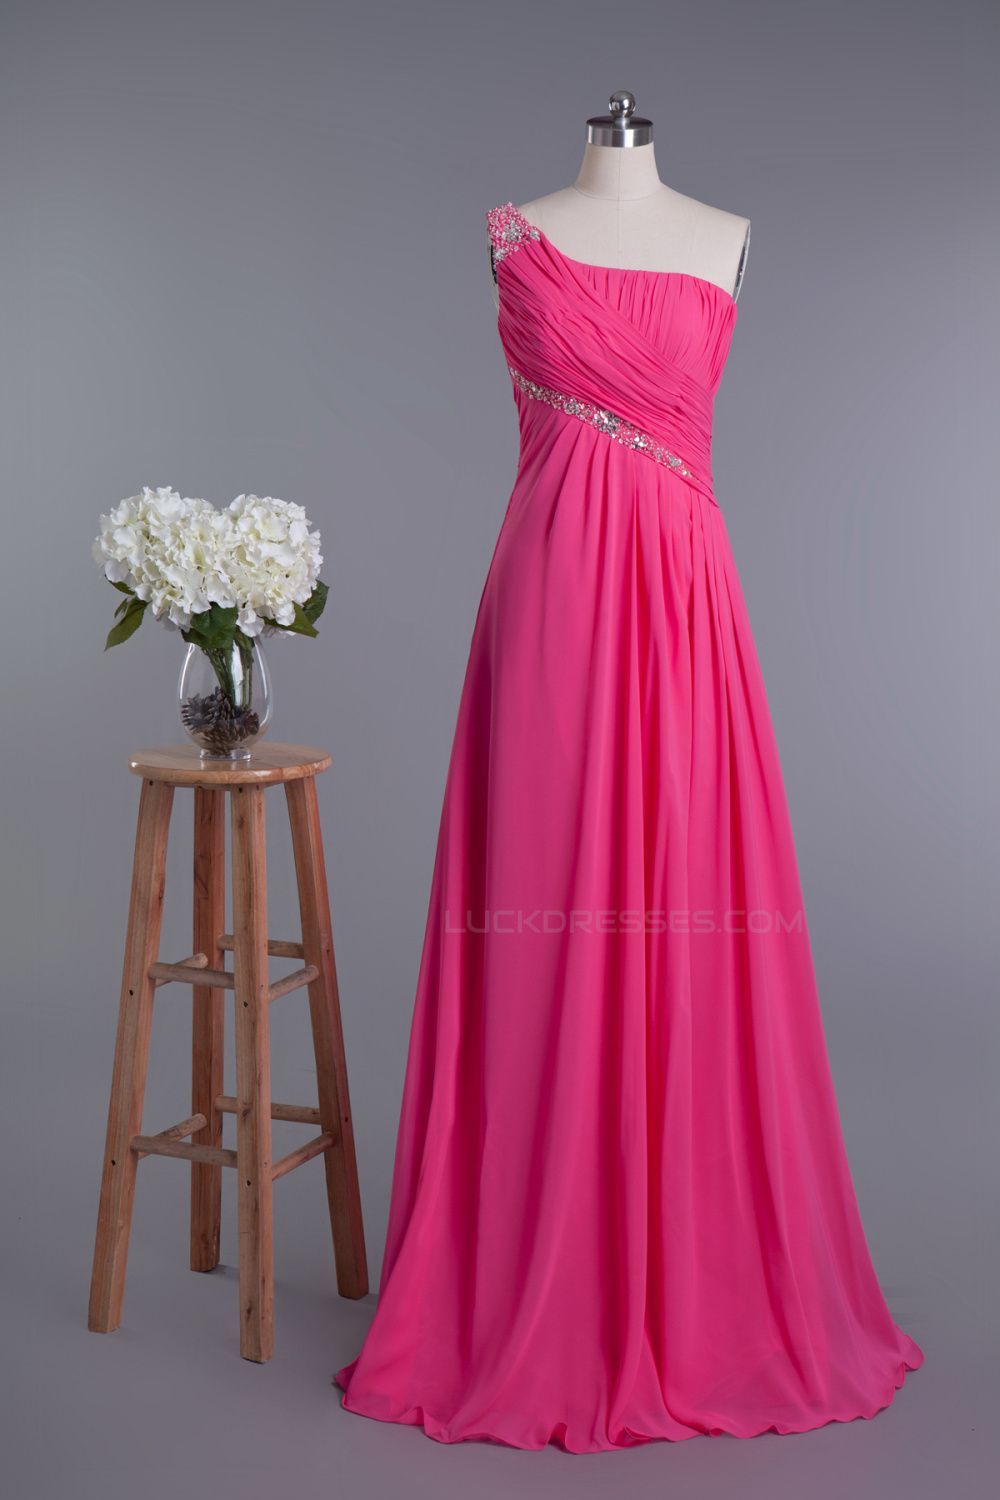 Aline oneshoulder beaded long chiffon prom evening formal dresses